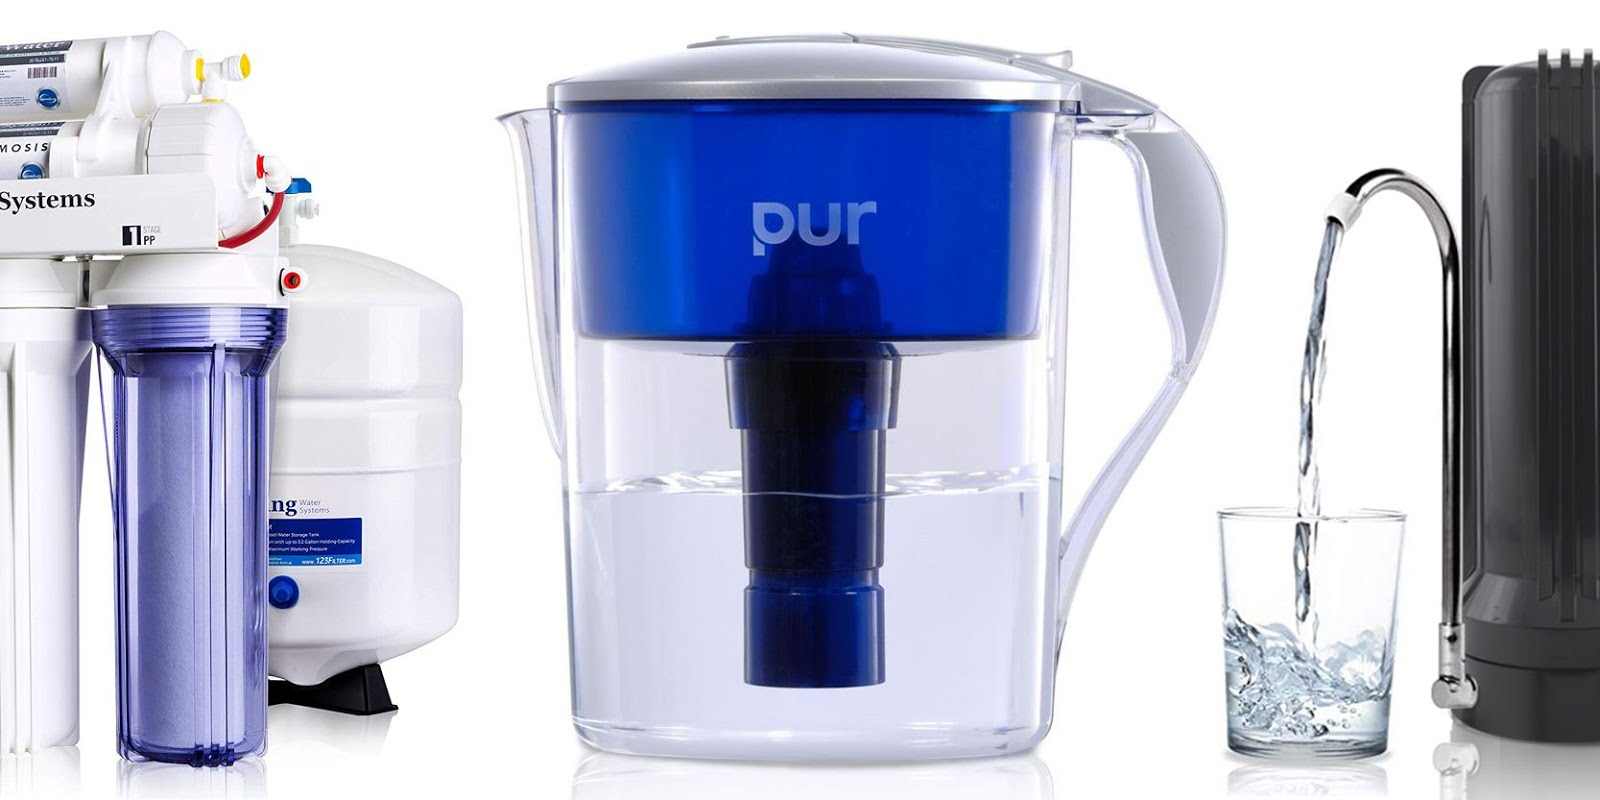 Is boiling water better than using water purifiers?